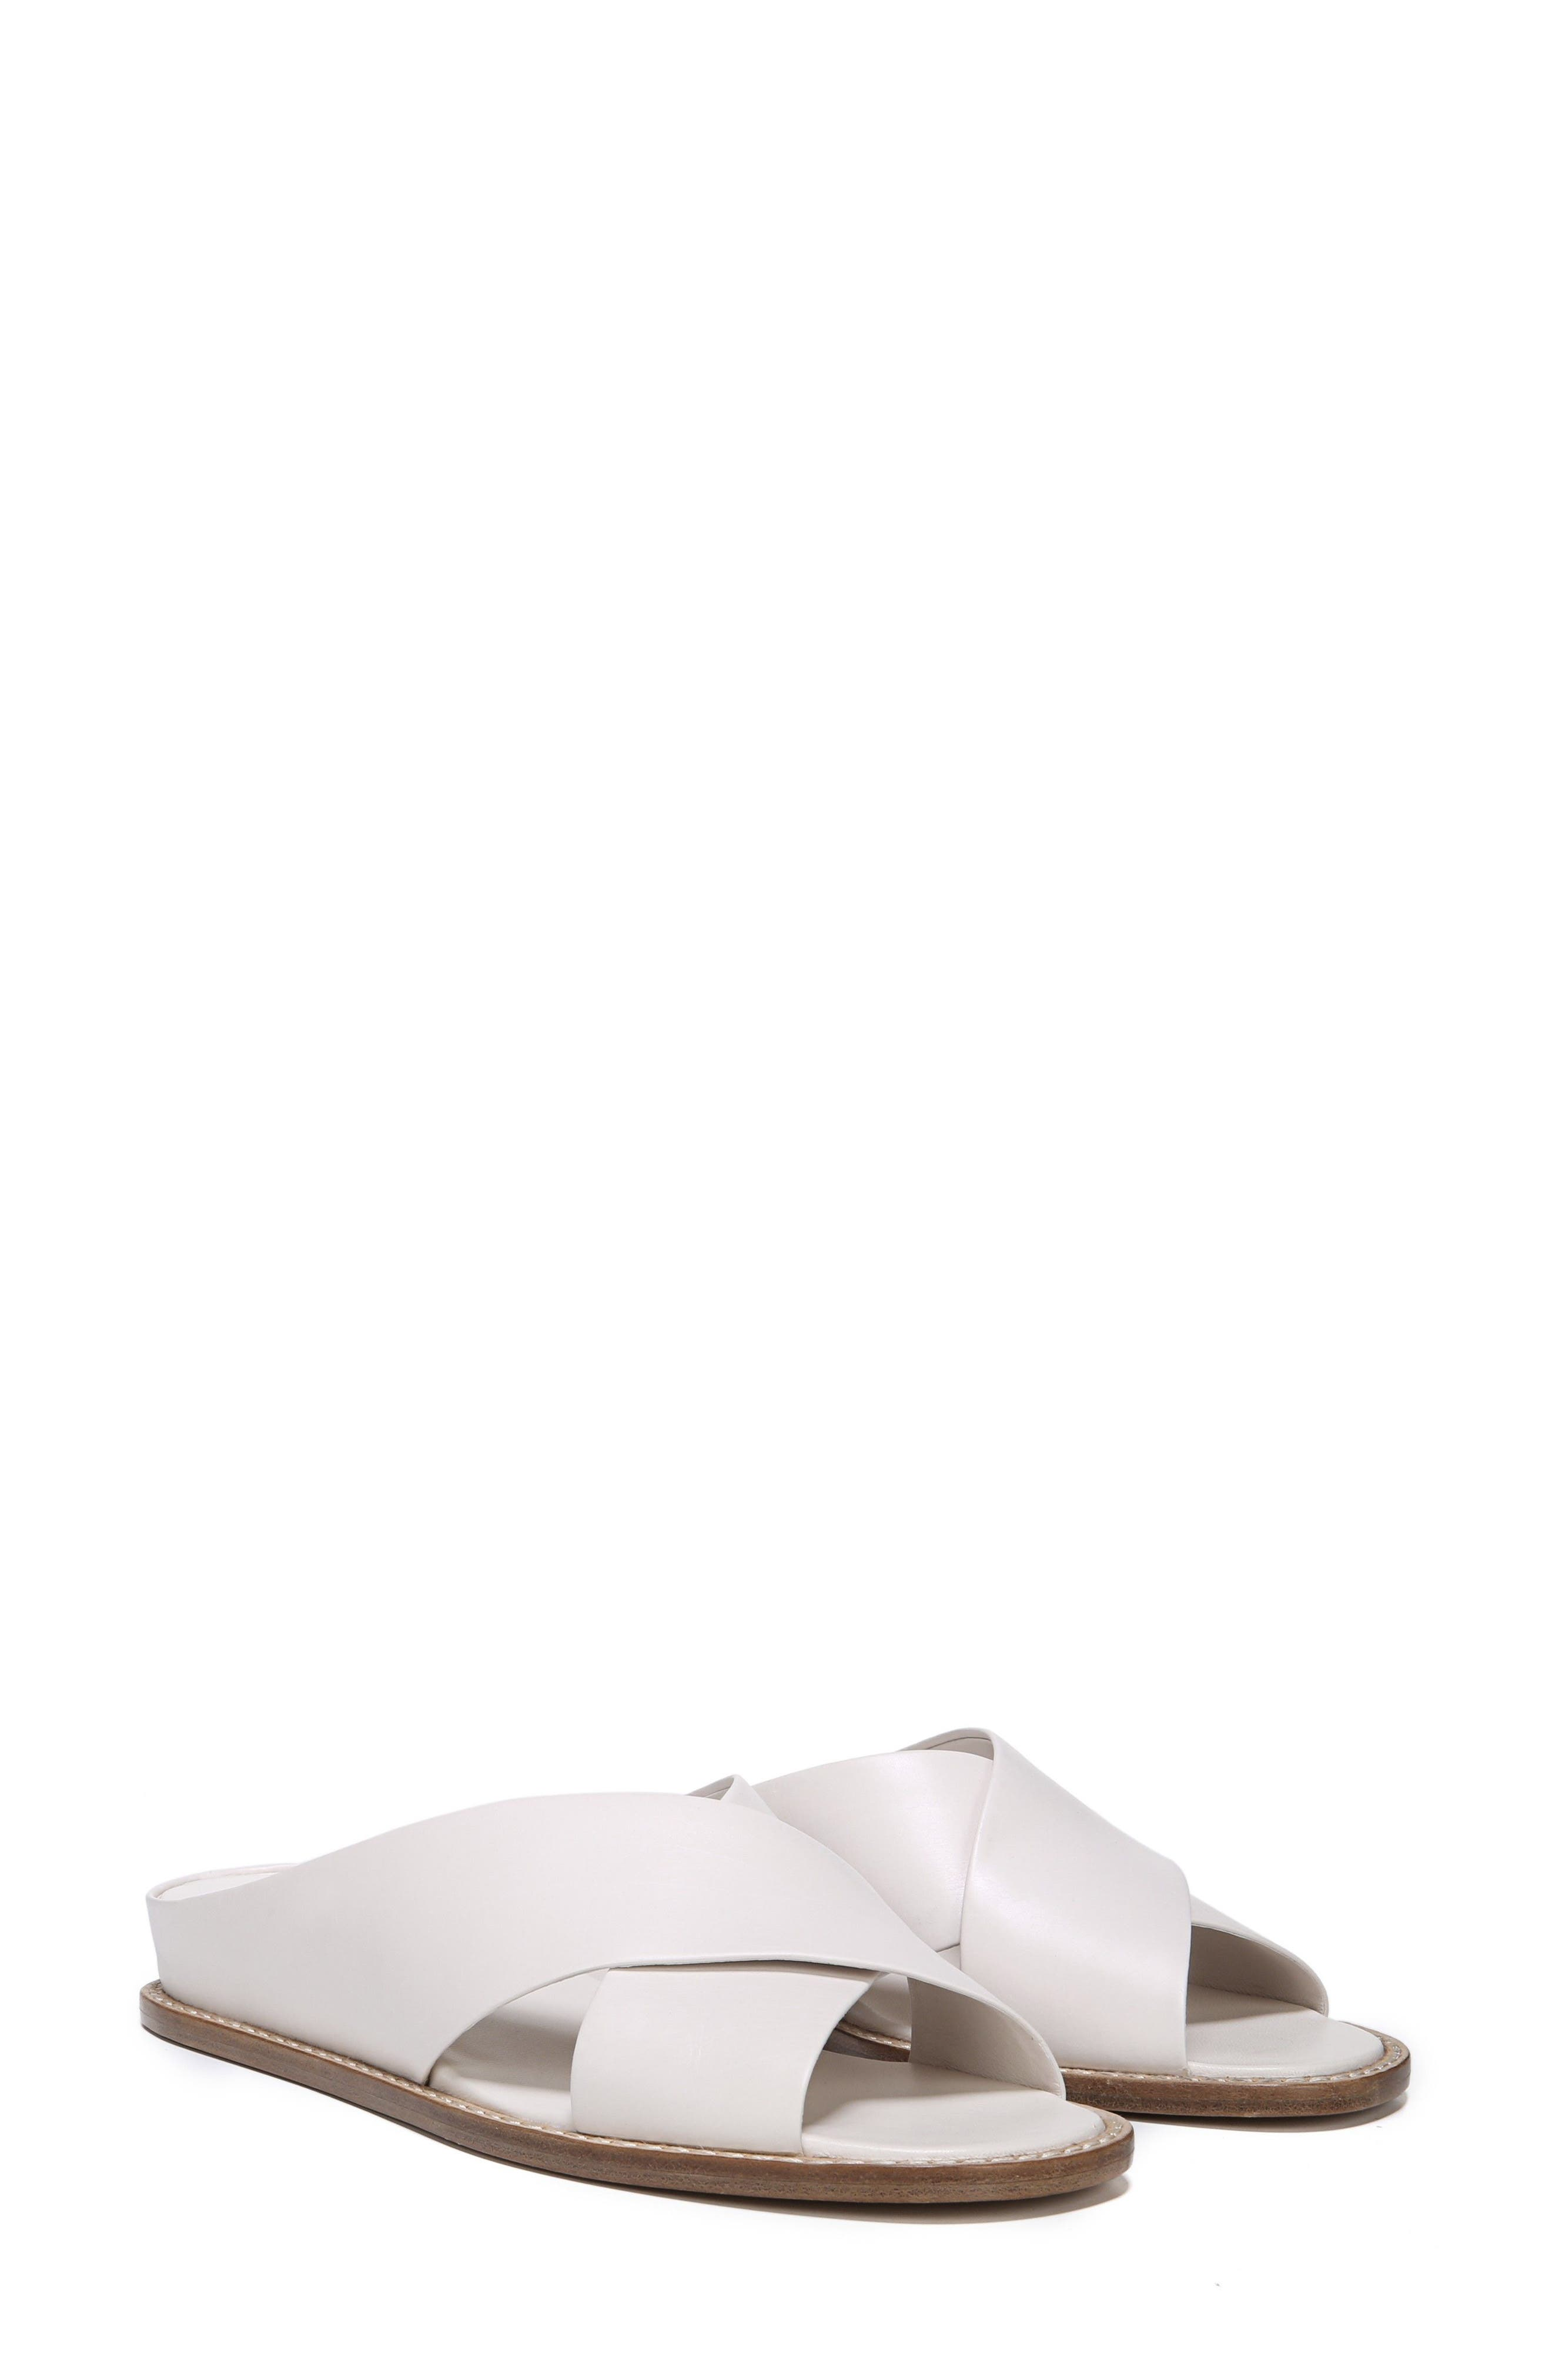 VINCE, Fairley Cross Strap Sandal, Alternate thumbnail 8, color, OFF WHITE LEATHER